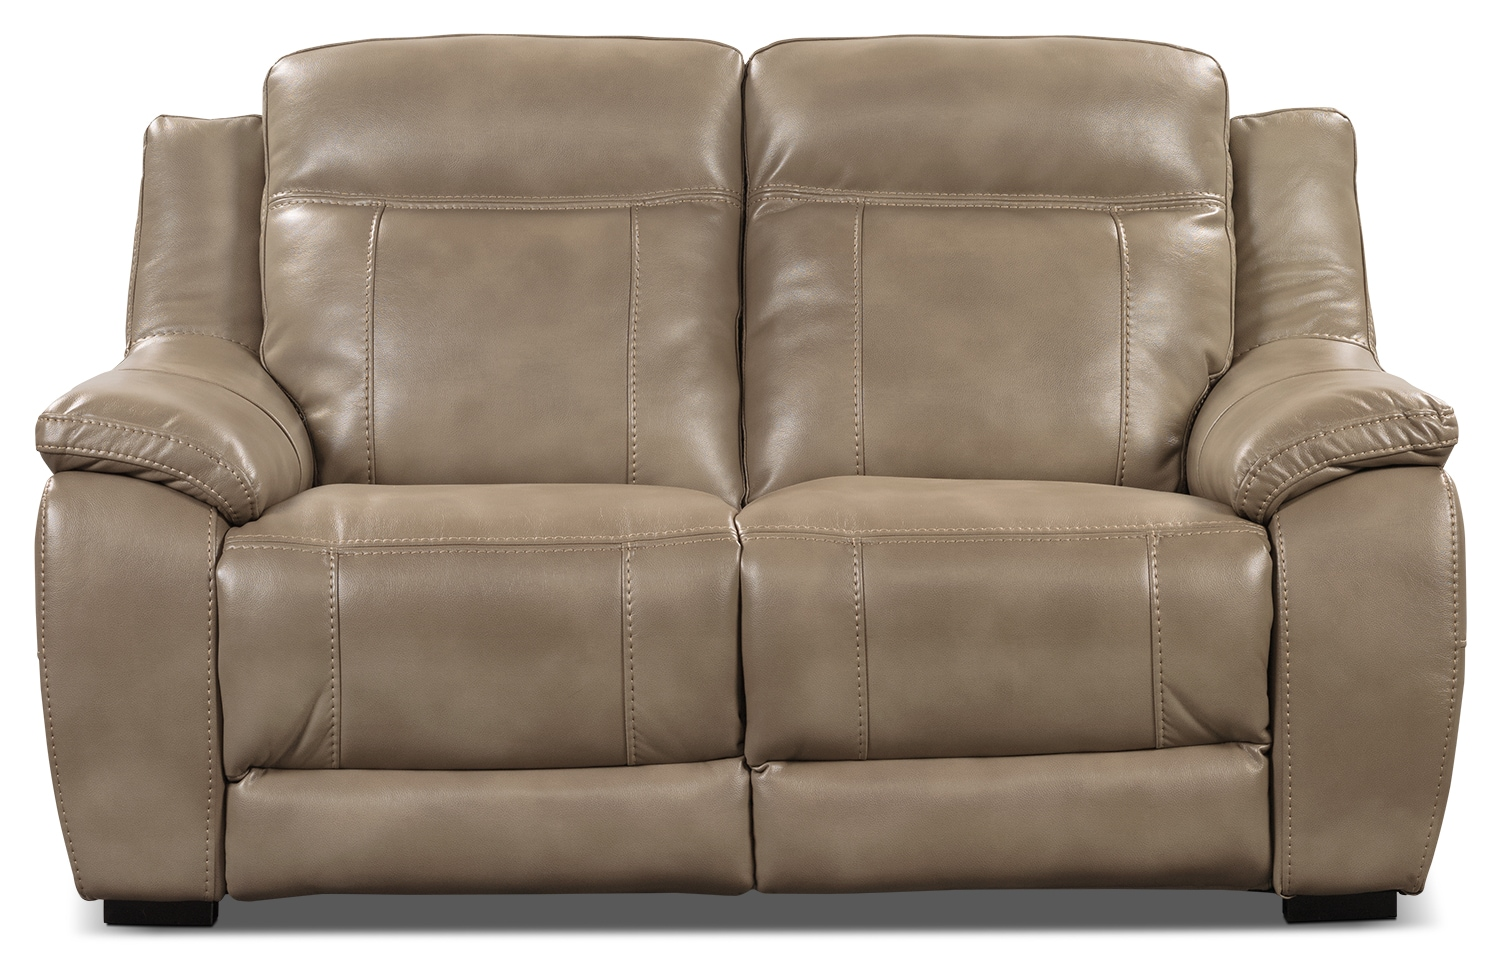 Novo Leather-Look Fabric Loveseat – Taupe